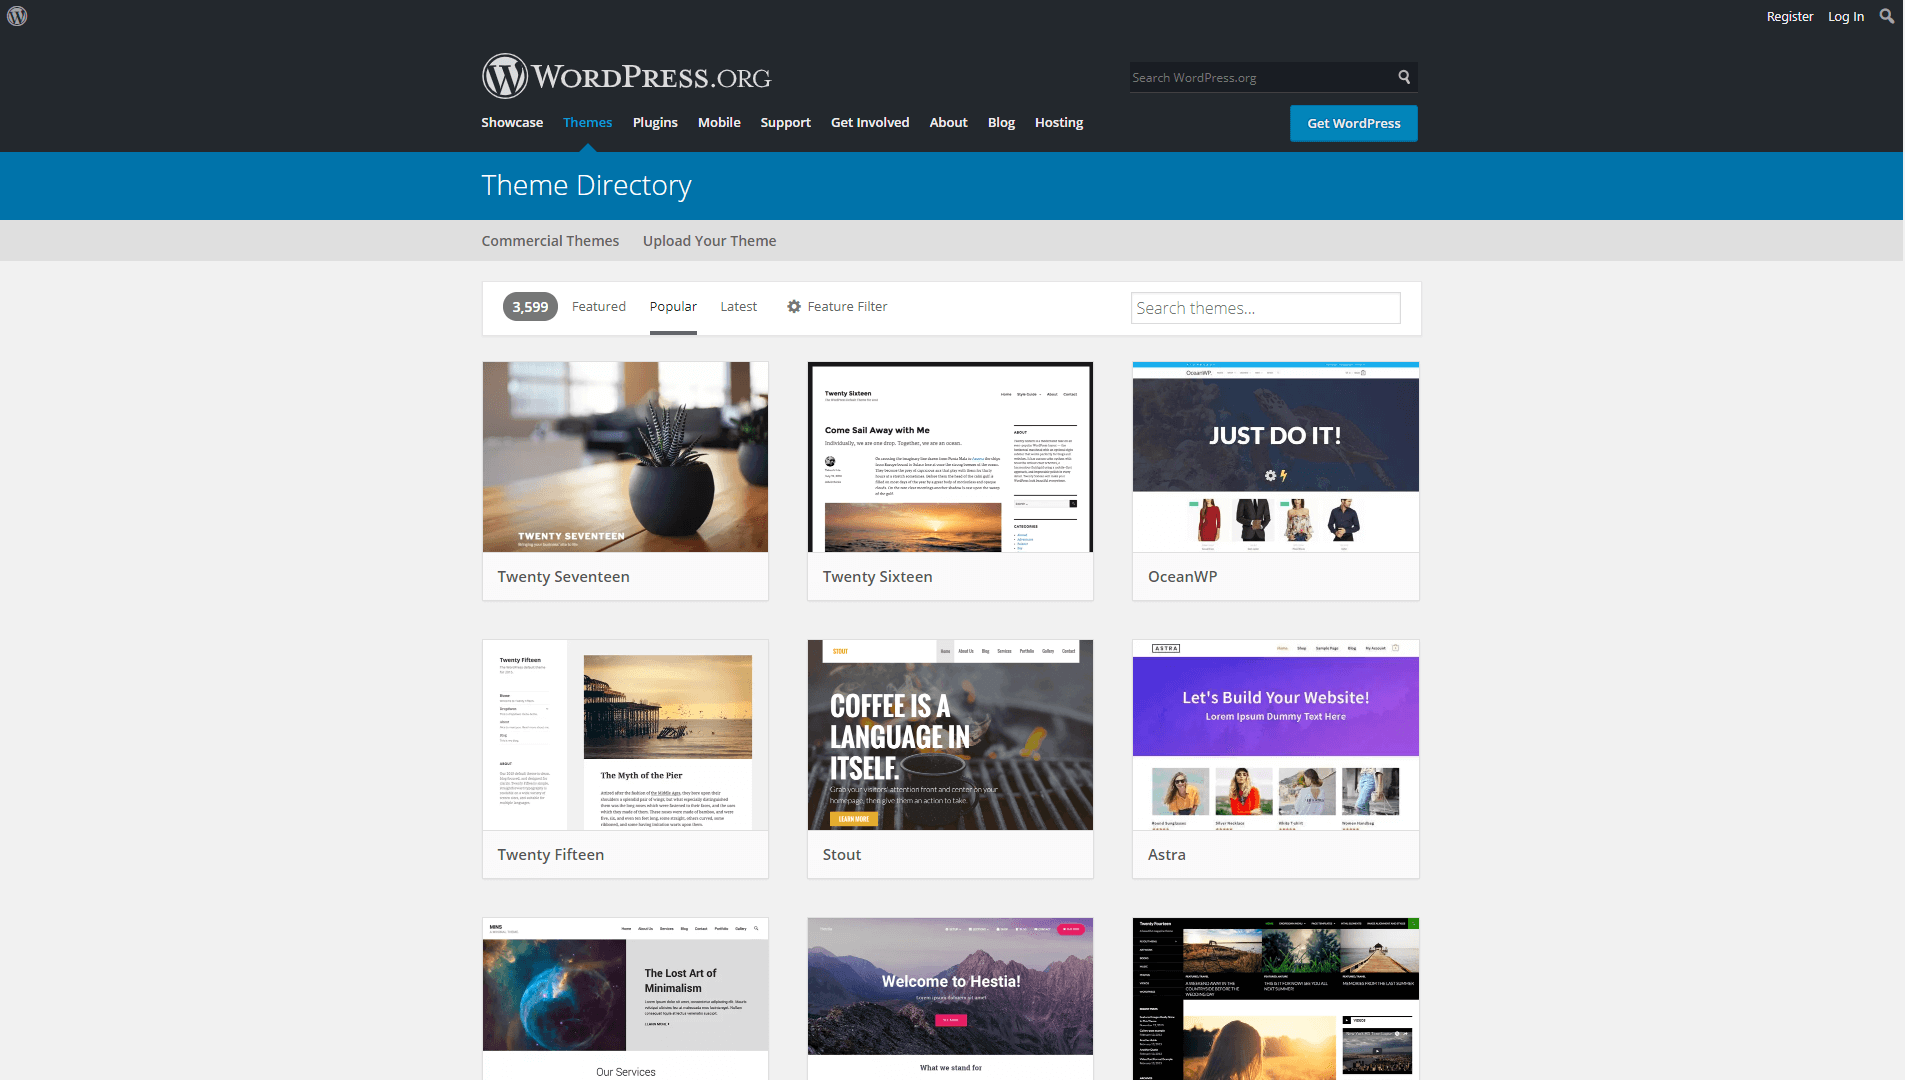 The WordPress.org theme repository.